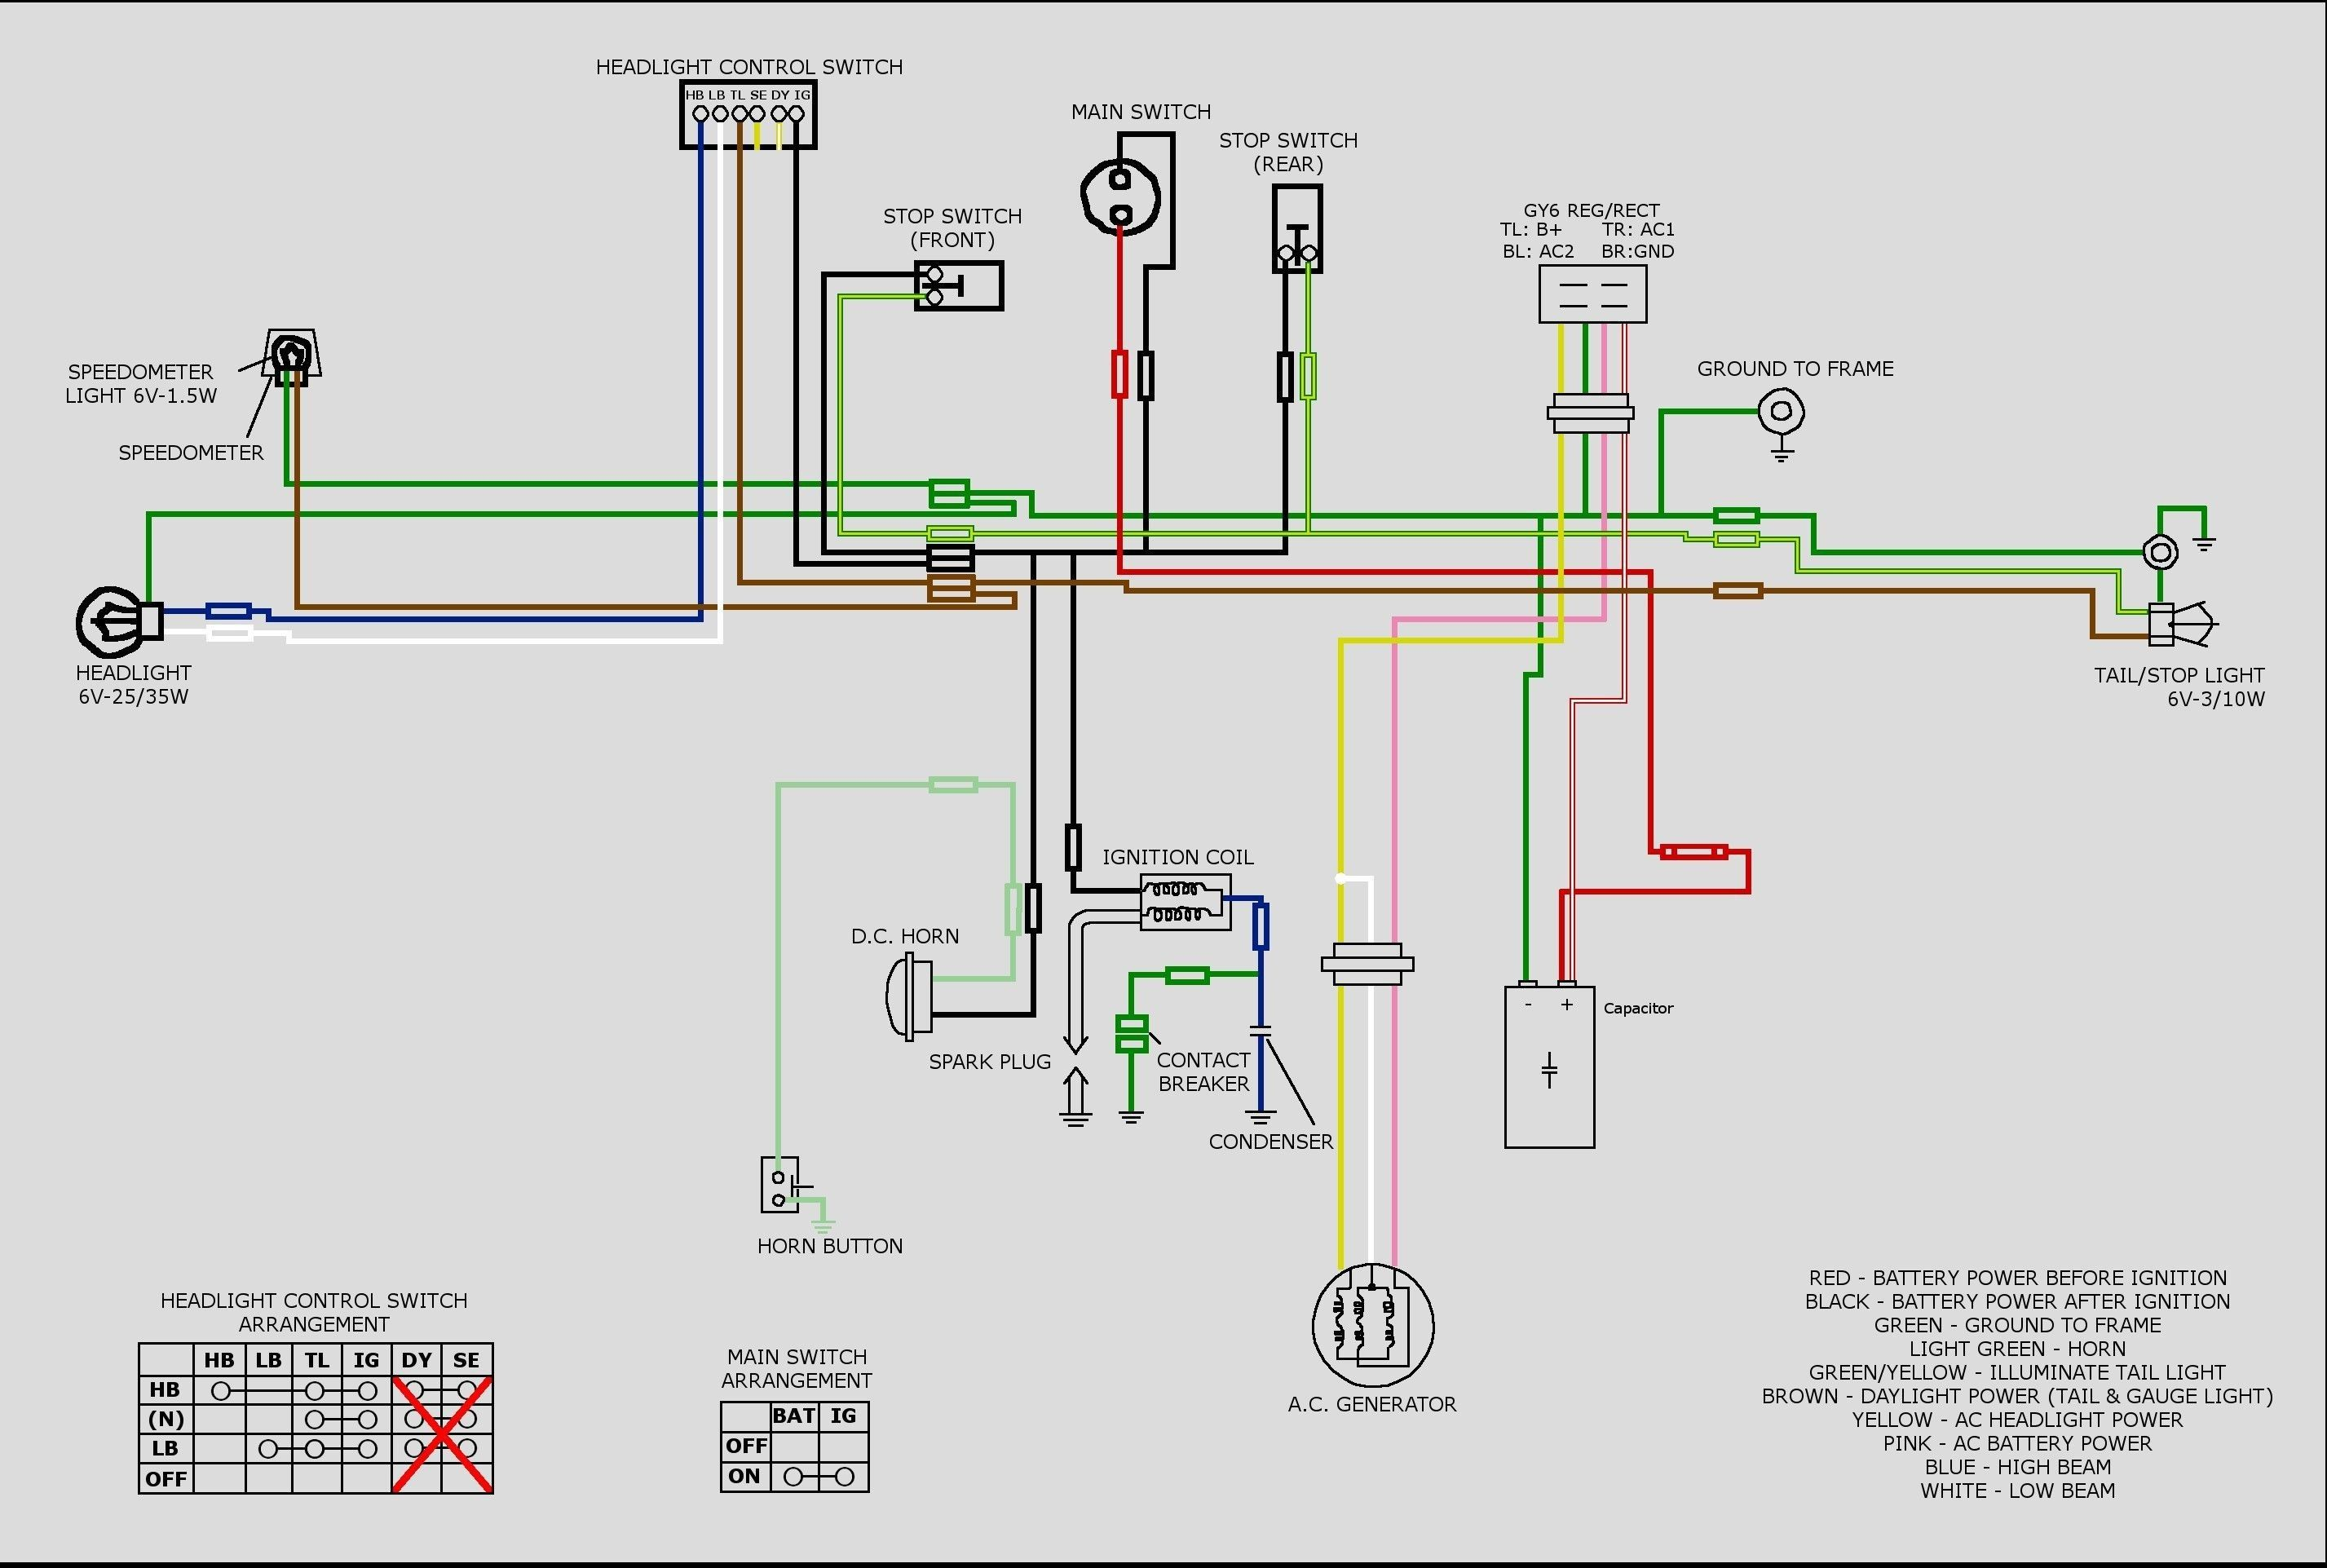 Electric Car Battery Diagram In 2021 Motorcycle Wiring Electrical Diagram 150cc